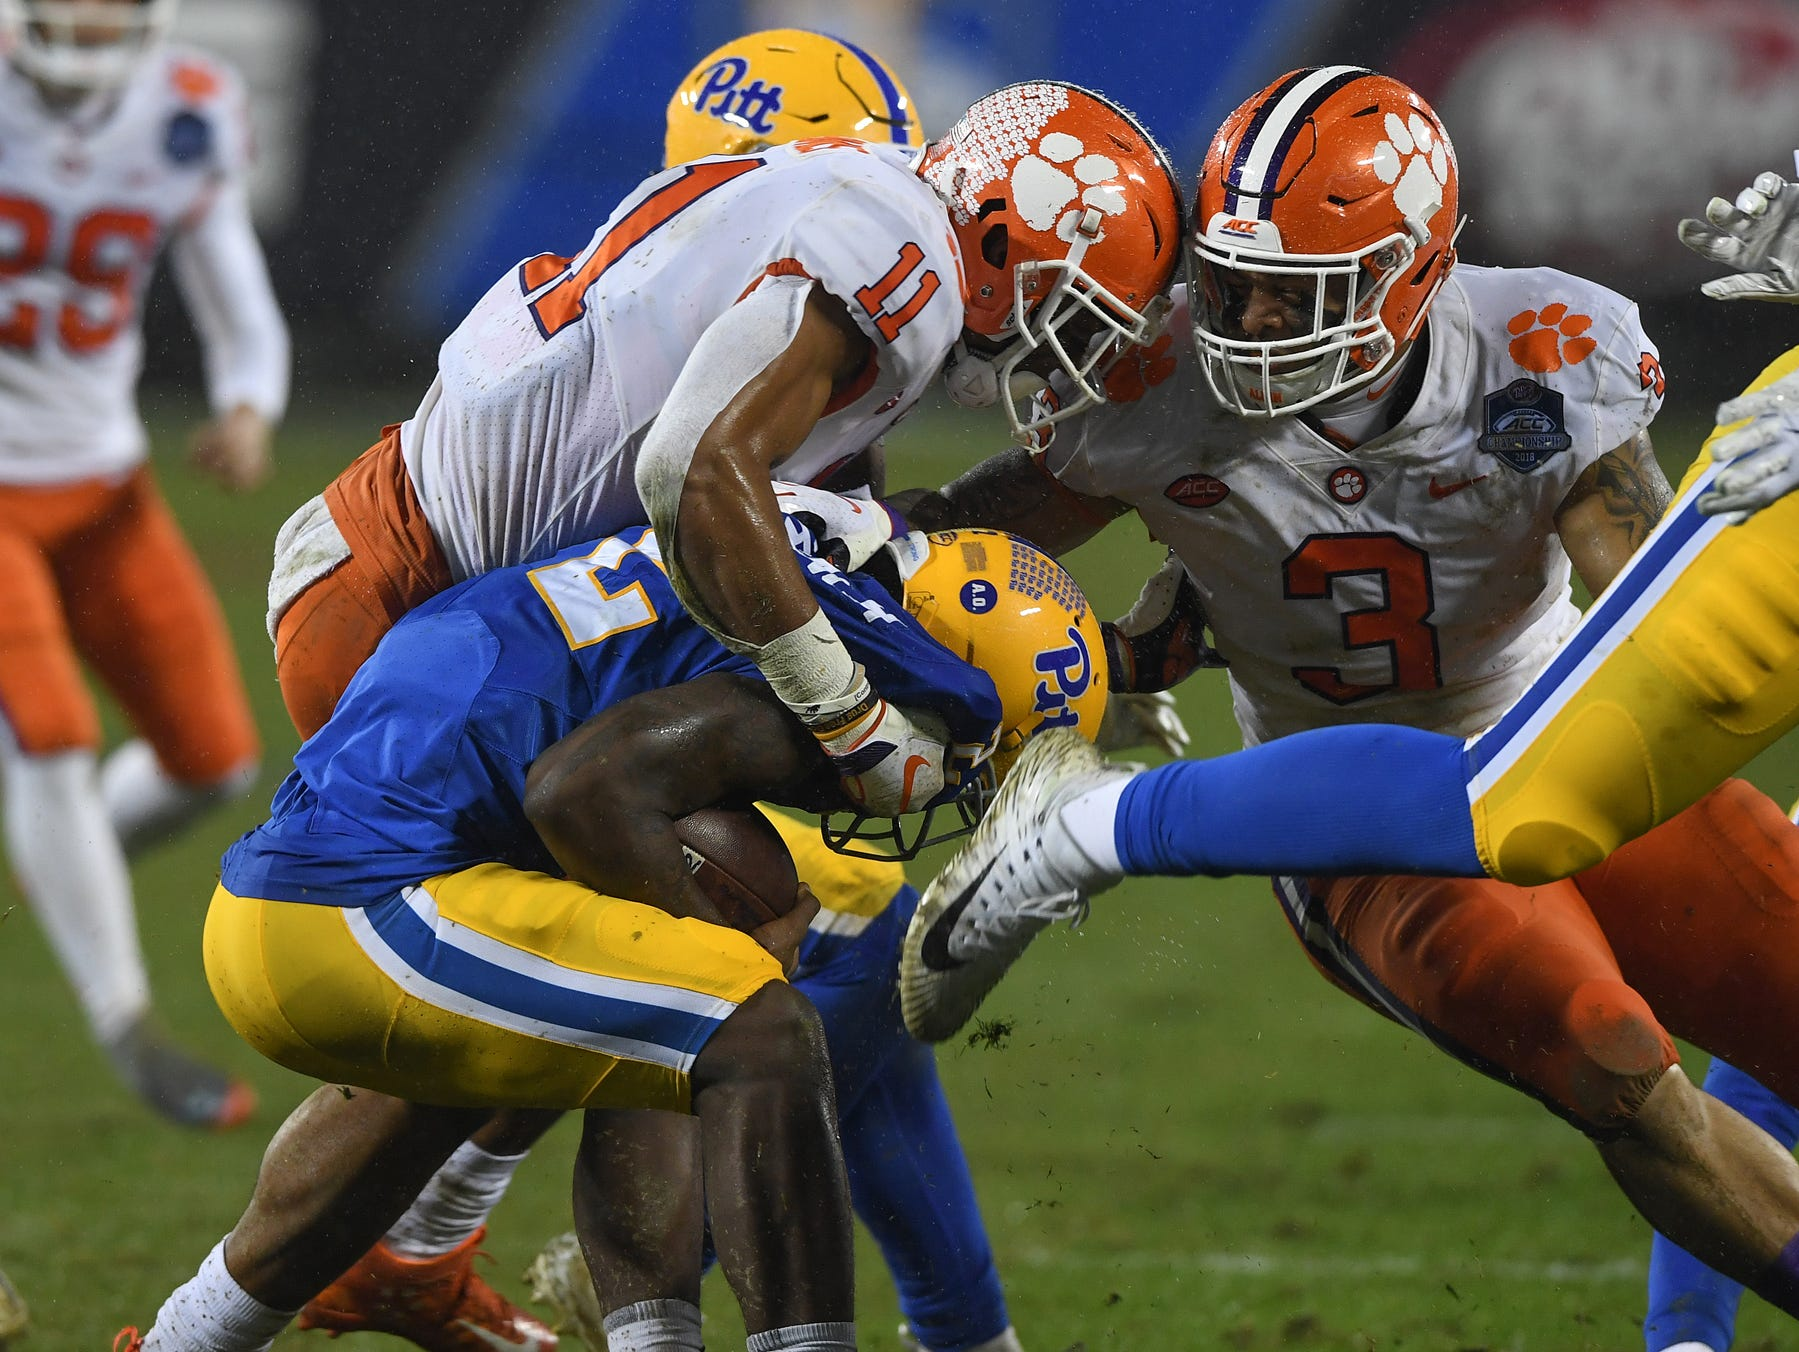 Clemson safety Isaiah Simmons (11) brings down Pittsburgh wide receiver Maurice Ffrench (2) during the 2nd quarter of the Dr. Pepper ACC Championship at Bank of America Stadium in Charlotte, N.C. Saturday, December 1, 2018.